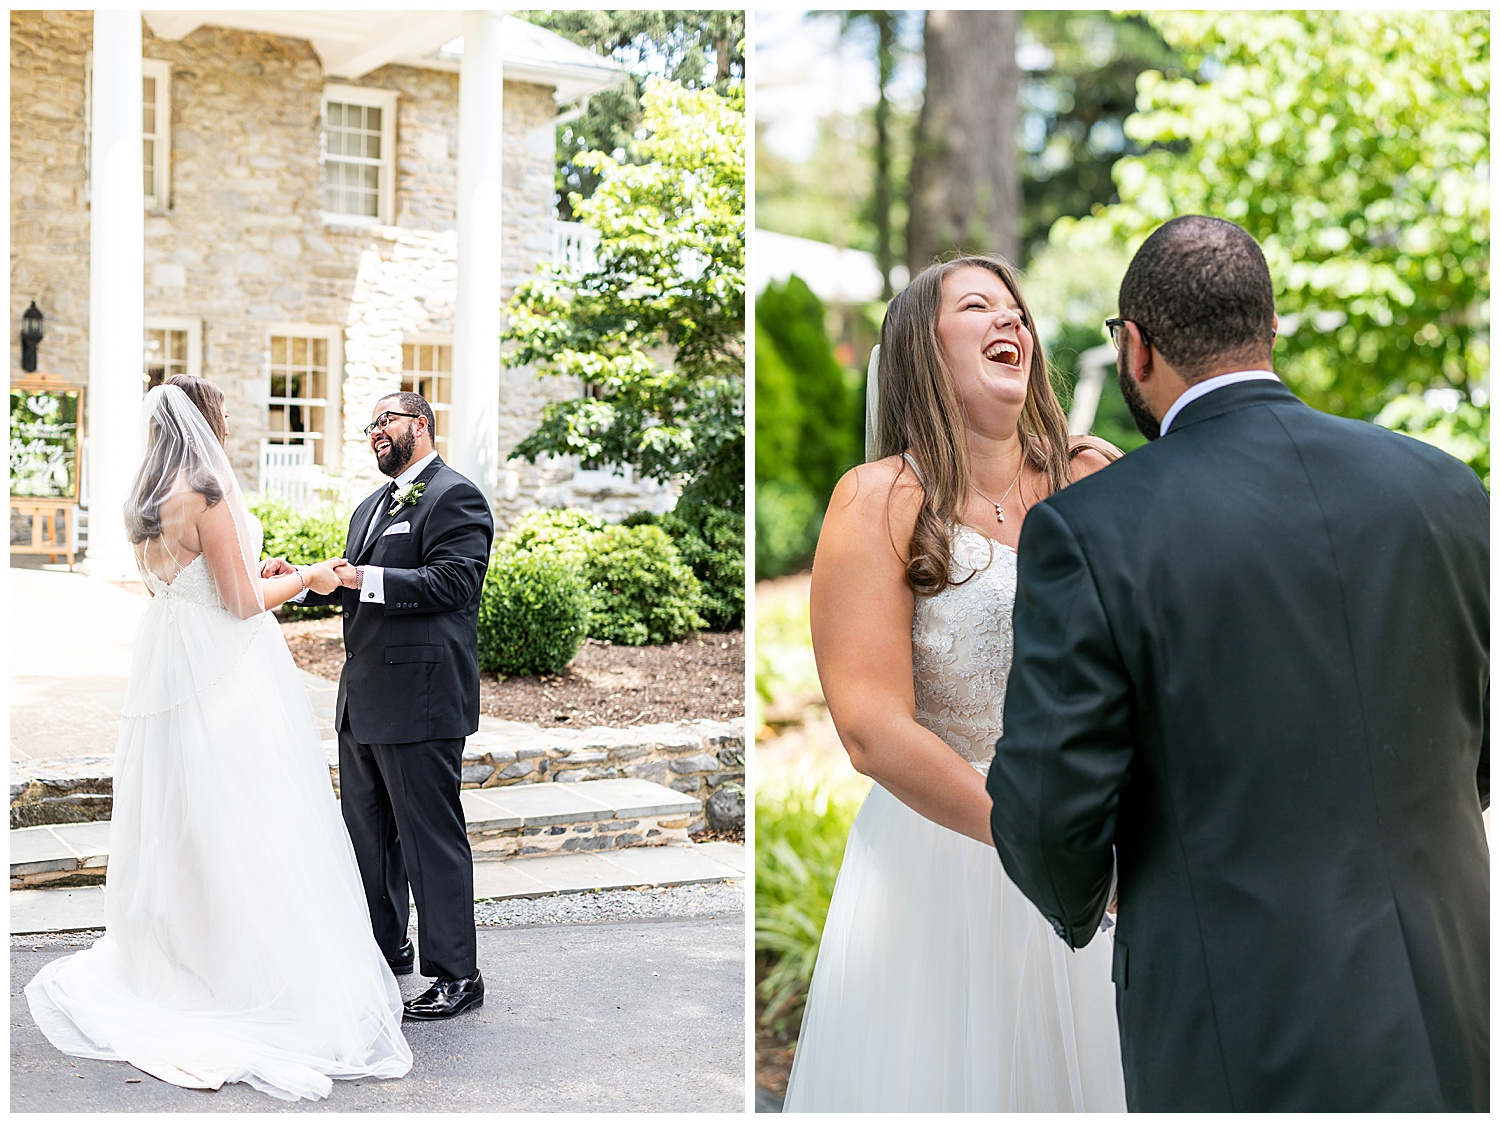 Brittany + Darryl Linwood Estate Wedding Living Radiant Photography photos_0042.jpg